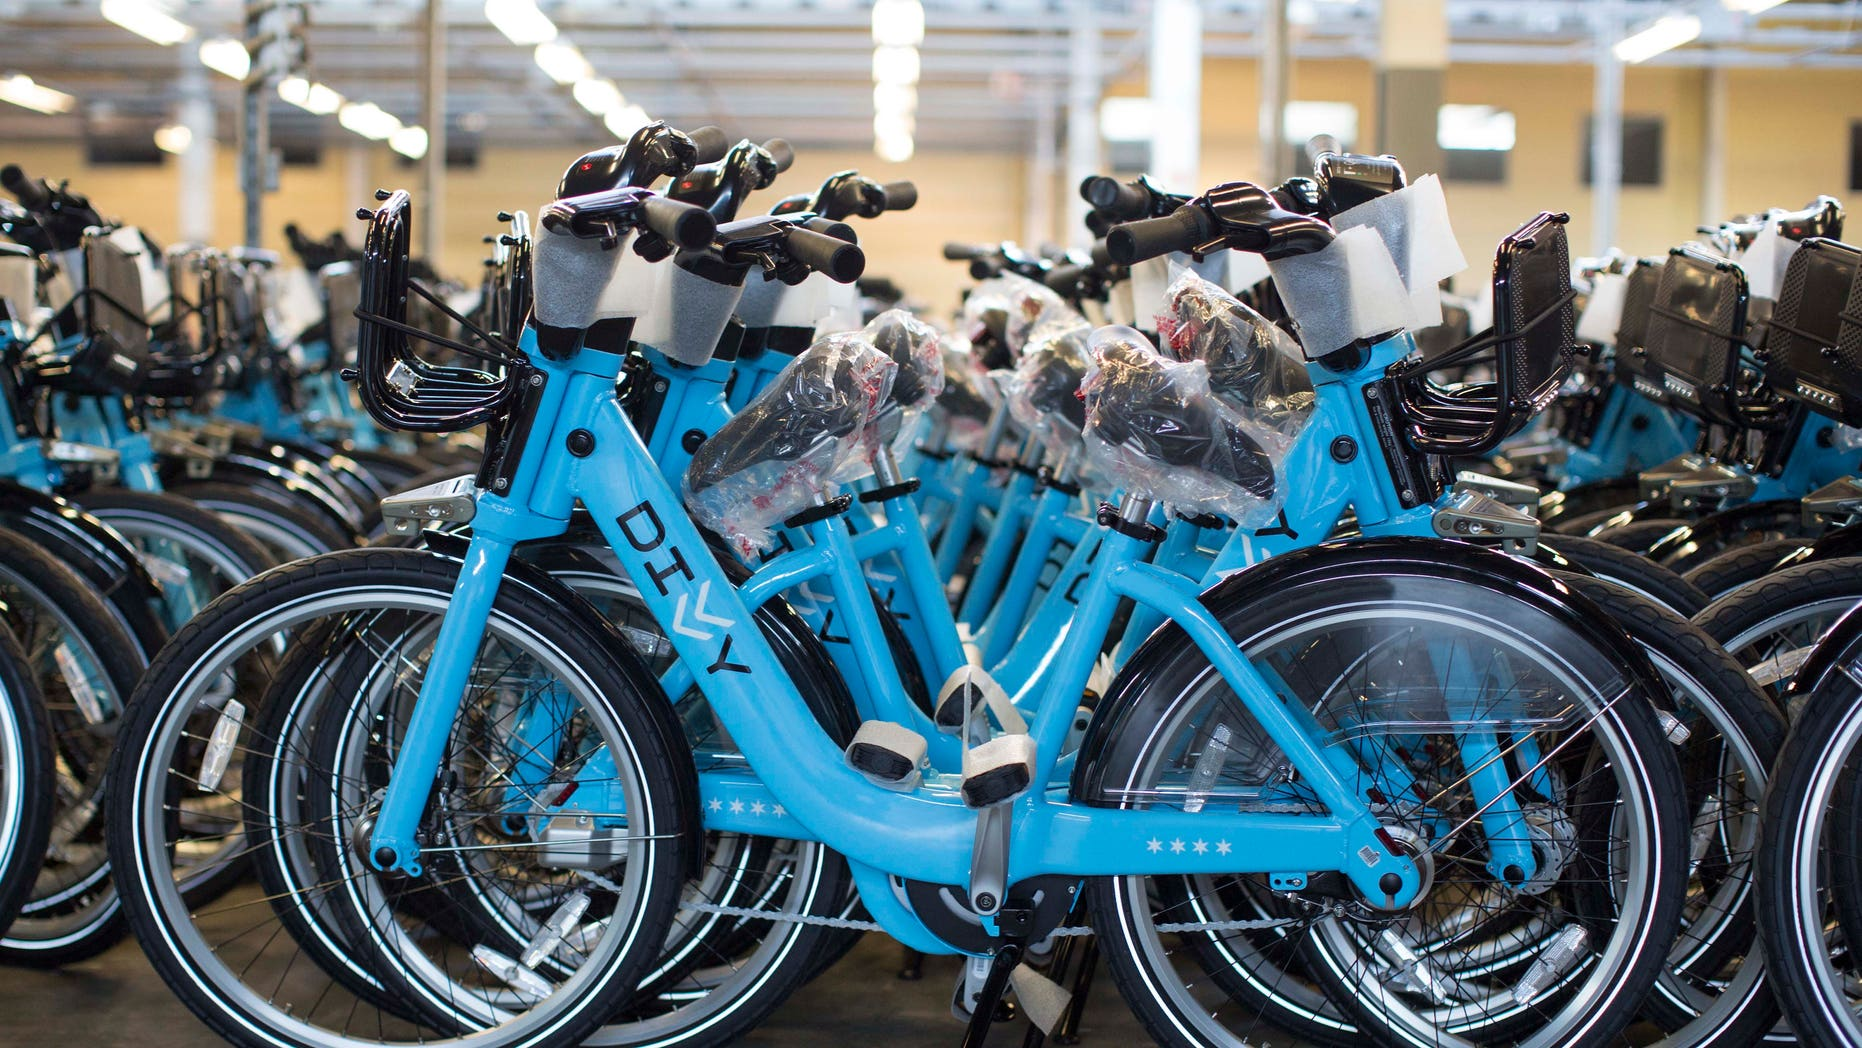 June 11, 2013: In this photo, fully assembled and ready to use bikes sit at the Divvy roll-out facility in Chicago. Chicago's new bike-share program, Divvy, will start in two weeks with about 750 bikes at 75 solar-powered docking stations and expand over the next year to at least 4,000 bikes at 400 stations scattered across the city. Users can get a $75 annual membership or a $7 day pass.